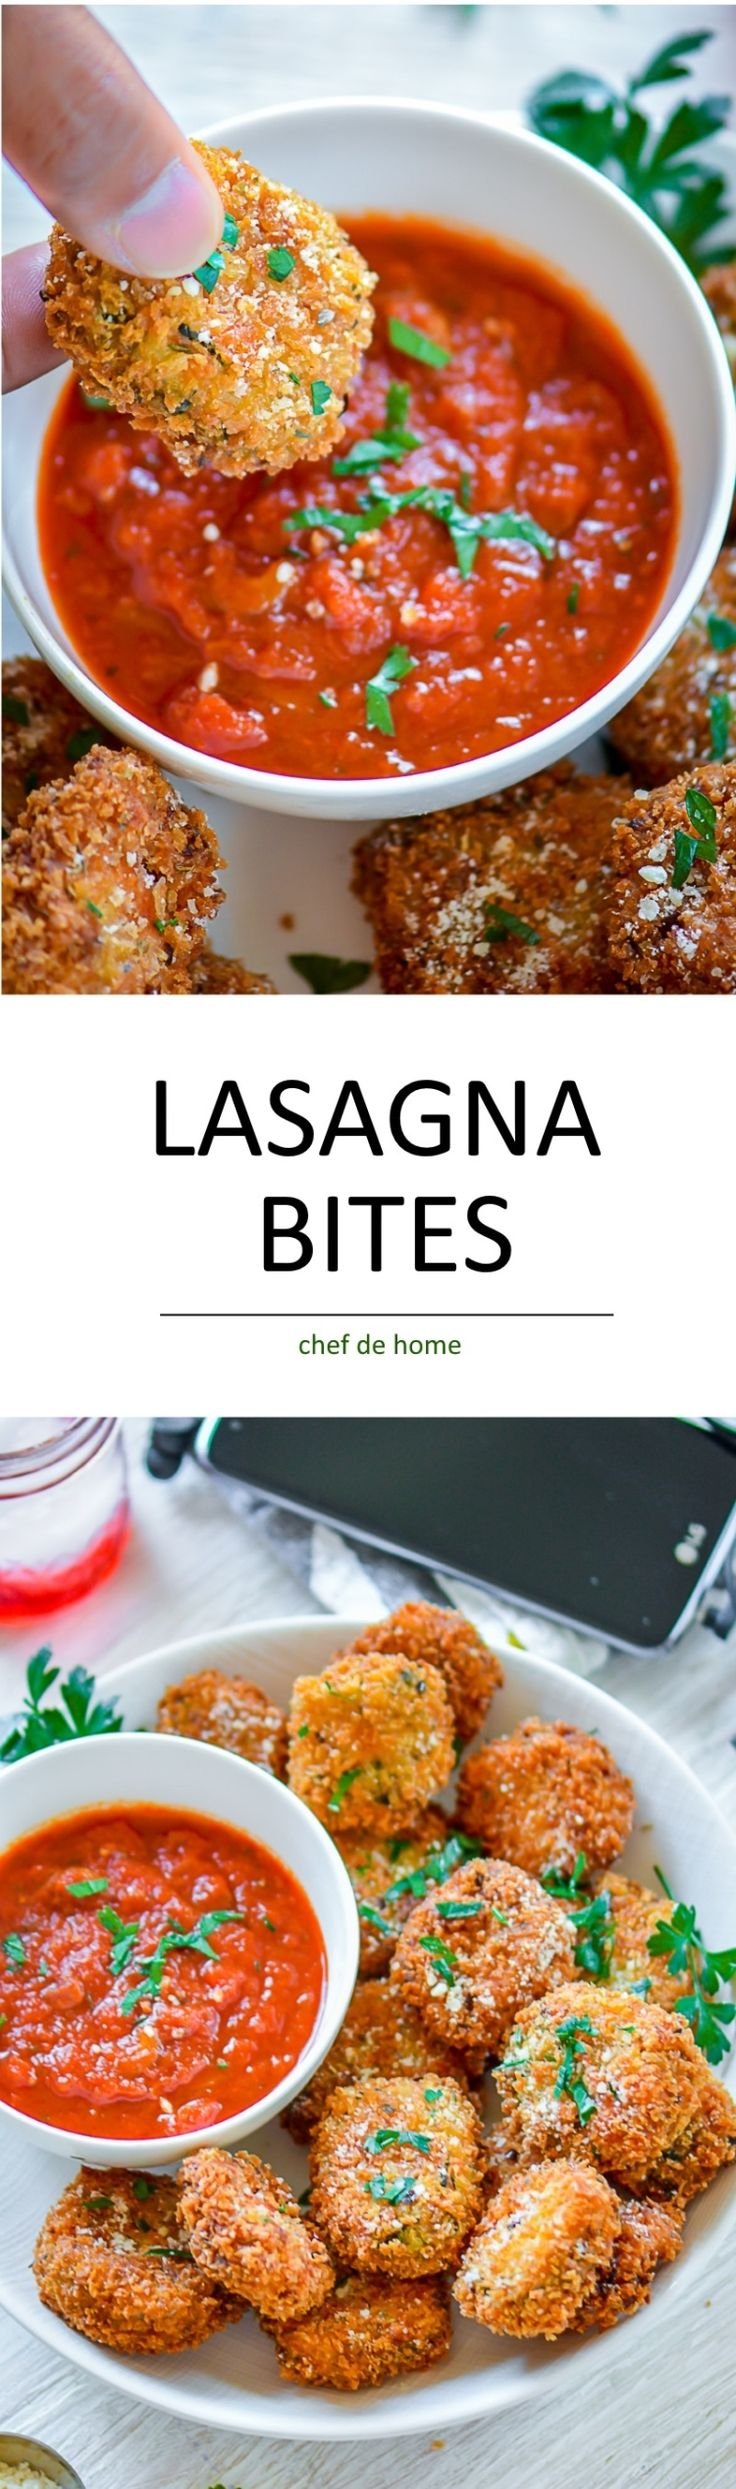 Fried Lasagna Bites for summer movie Night Snack |  #ad #DataAndAMovie @FamilyMobile  @chefdehome.com